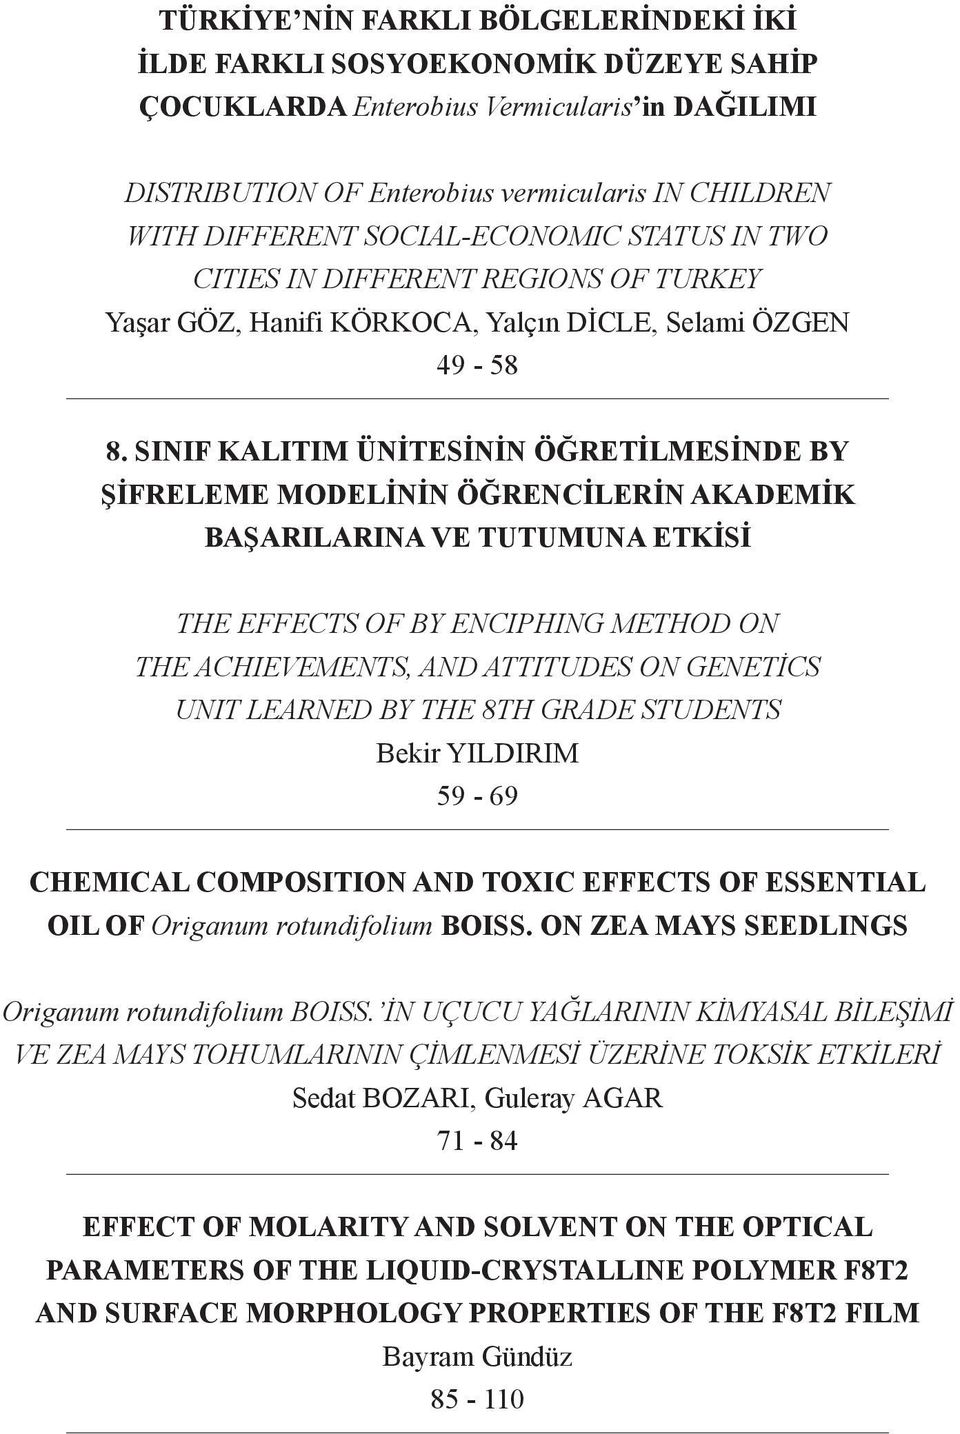 SINIF KALITIM ÜNİTESİNİN ÖĞRETİLMESİE BY ŞİFRELEME MODELİNİN ÖĞRENCİLERİN AKADEMİK BAŞARILARINA VE TUTUMUNA ETKİSİ THE EFFECTS OF BY ENCIPHING METHOD ON THE ACHIEVEMENTS, A ATTITUDES ON GENETİCS UNIT